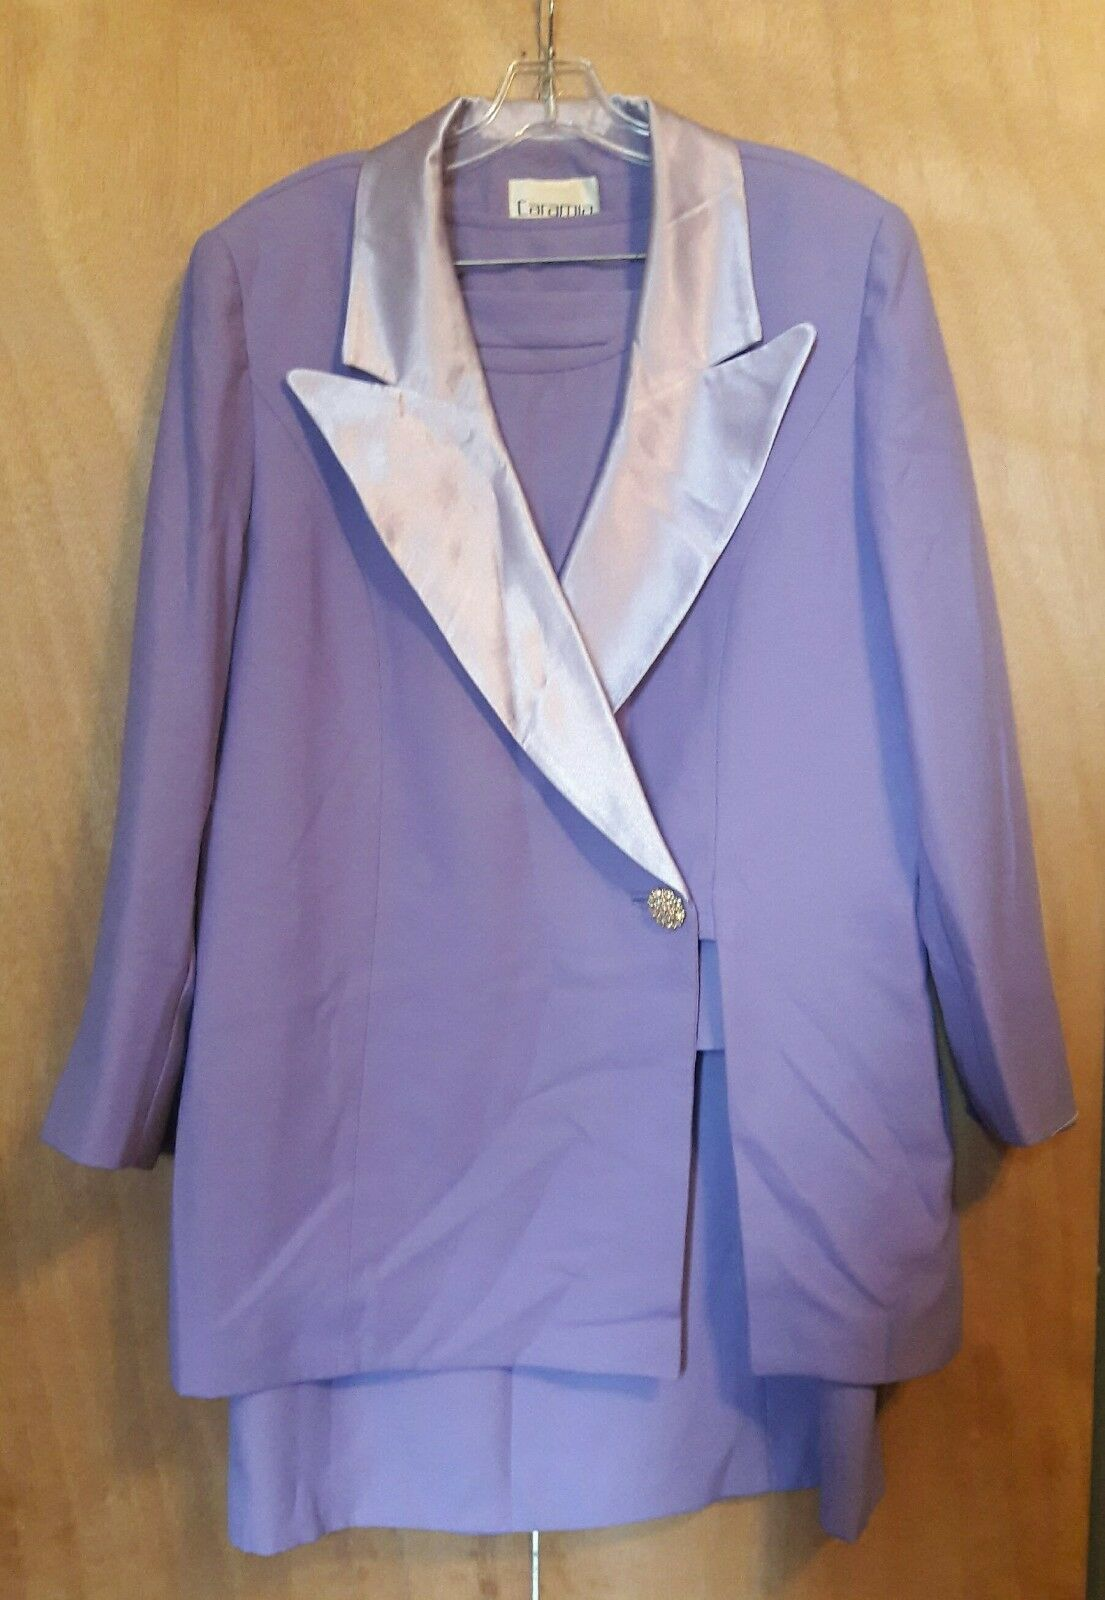 Caramia 3 piece suit-Lavendar, Fully Lined, Great Condition